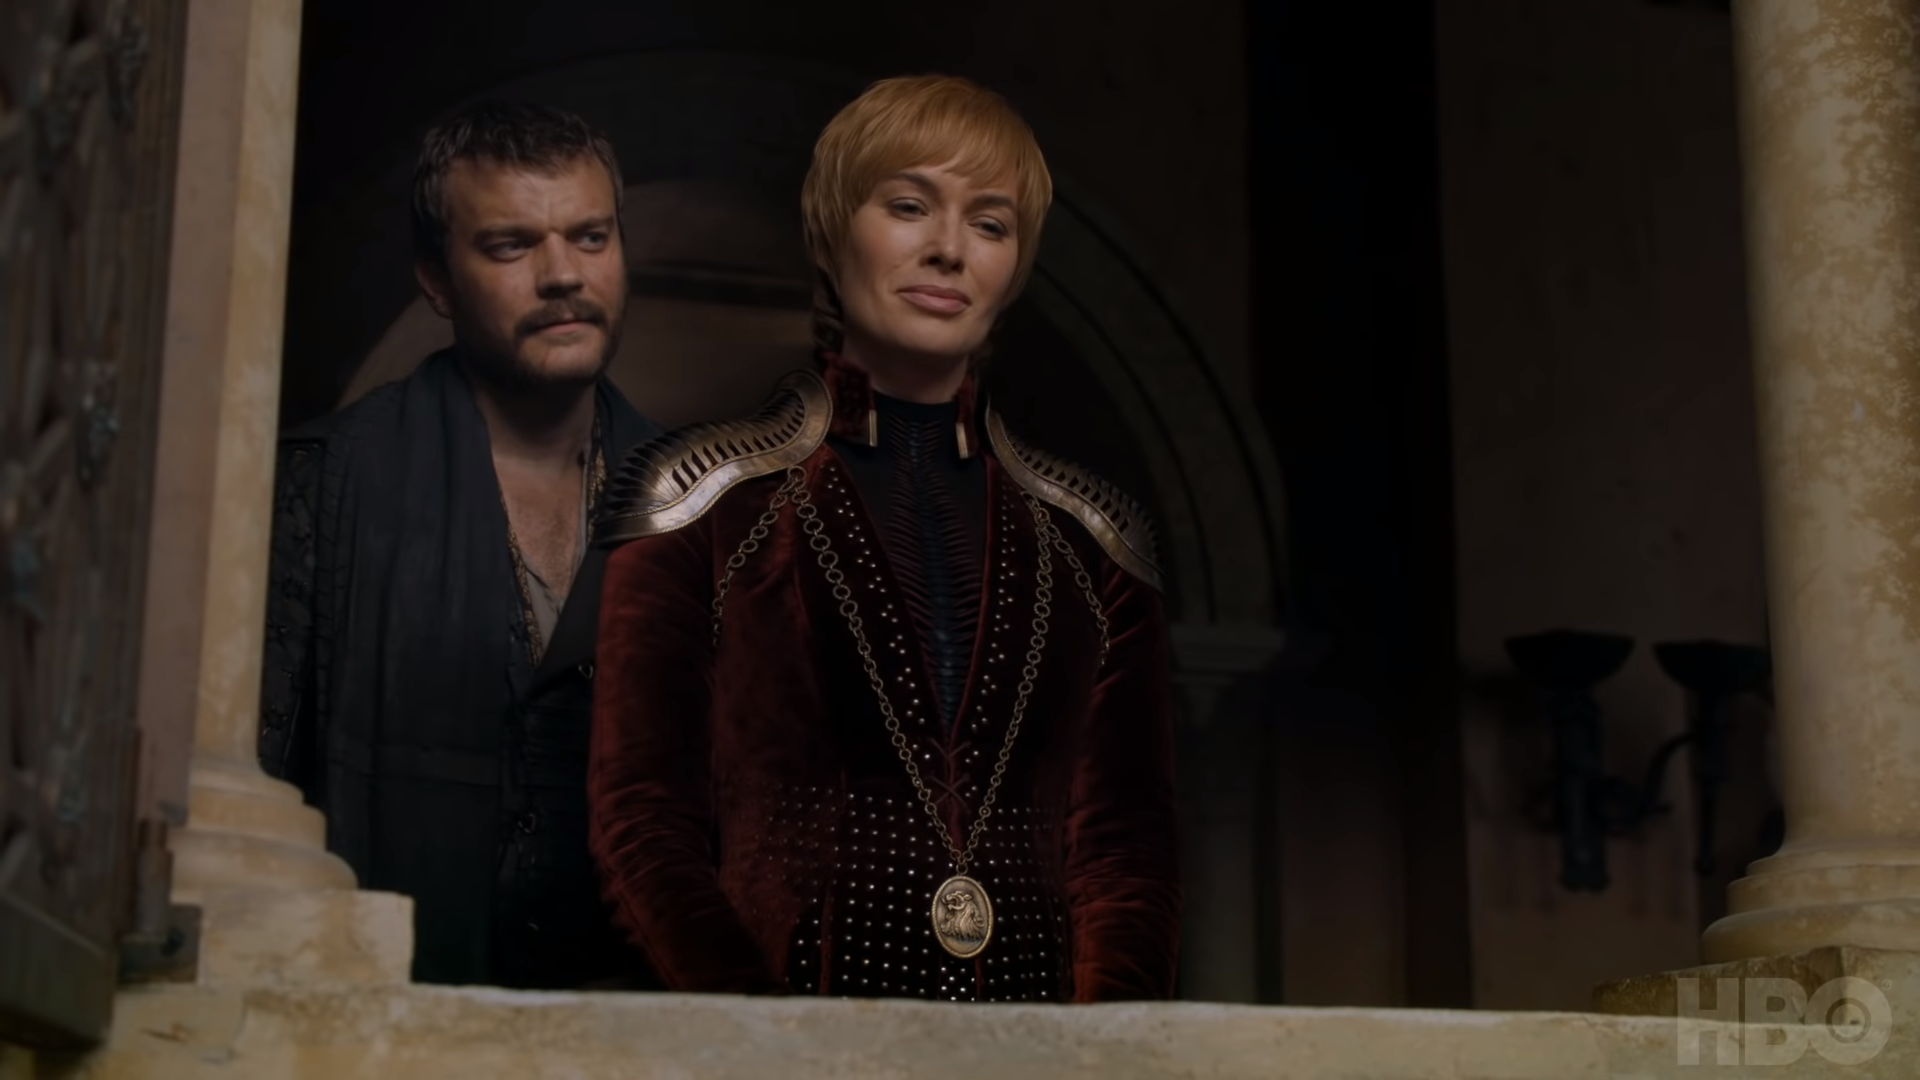 How to Watch Game of Thrones Season 8 Episode 4 Live Online